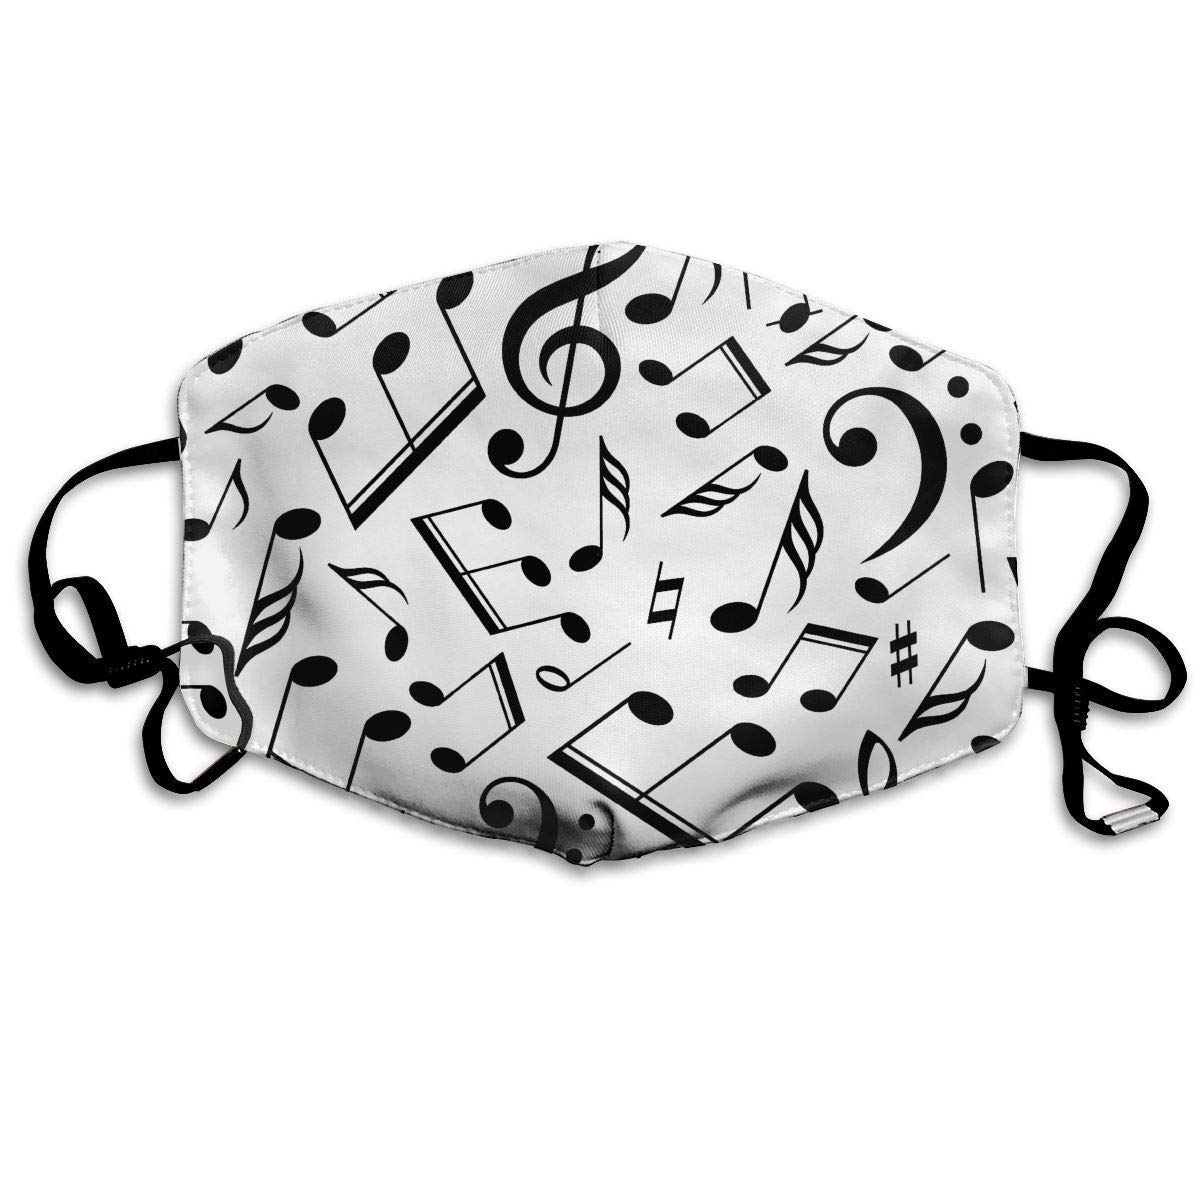 Daawqee Mascarillas, Anti Dust Pollution Mask Musical Note Print Reusable Washable Earloop Face Mouth Mask for Men Women